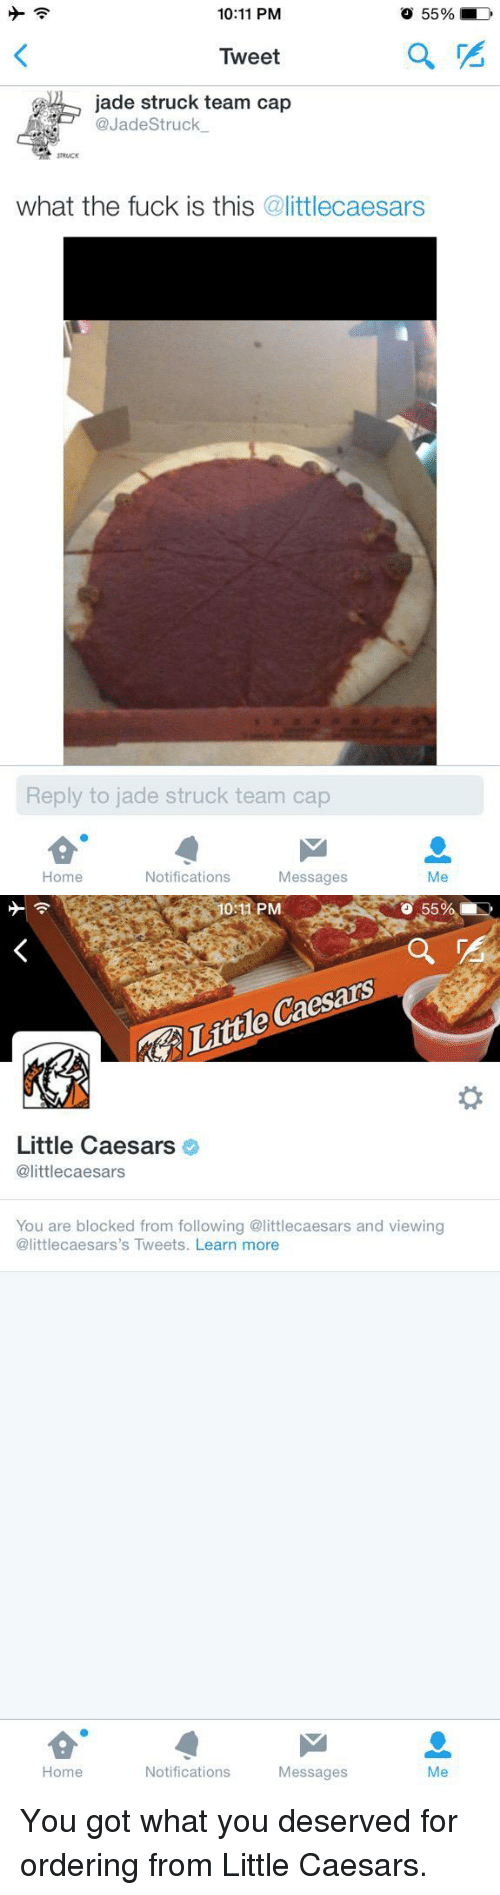 Little Caesars, Home, and Got: 10:11 PM  O 55%  Tweet  jade struck team a  @JadeStruck.  STRUICK  what the fuck is this @littlecaesars  Reply to jade struck team cap  Home  Notifications  Messages  Me   10:11 PM  55%,  Little Caesars  Little Caesars  @littlecaesars  You are blocked from following @littlecaesars and viewing  @littlecaesars's Tweets. Learn more  Home  Notifications  Messages  Me <p>You got what you deserved for ordering from Little Caesars.</p>